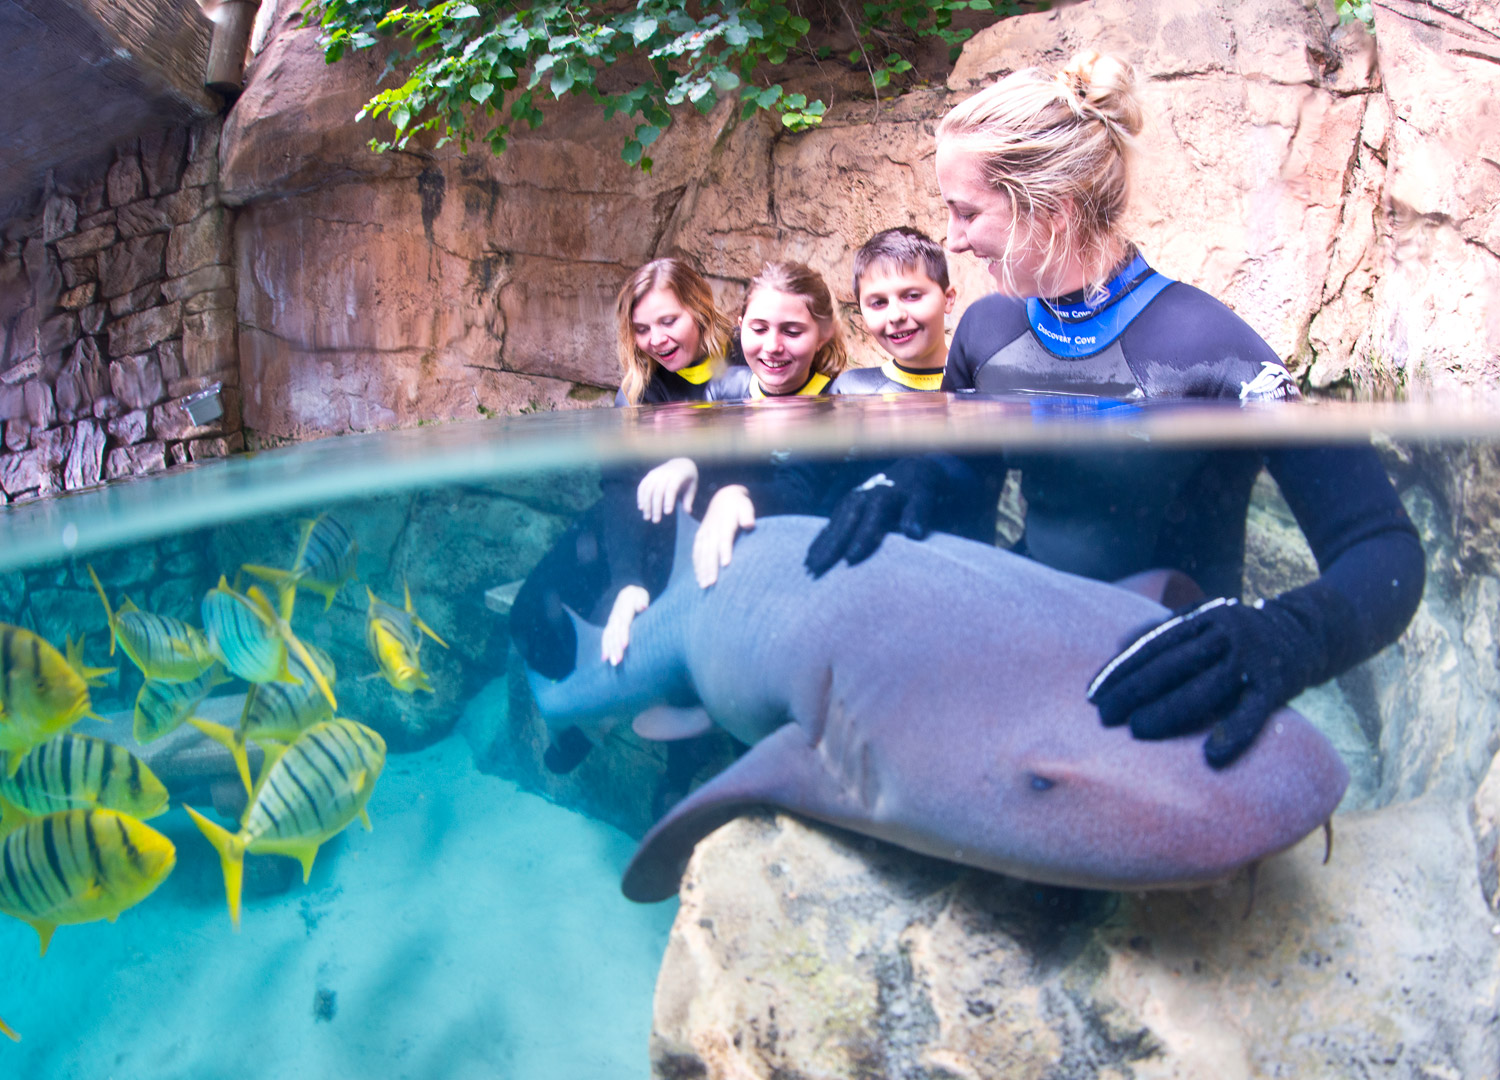 Swim with dolphins, snorkel tropical reefs, come face to face with sharks, explore underwater shipwrecks, or just relax on the white-sand beach at Discovery Cove, Florida.